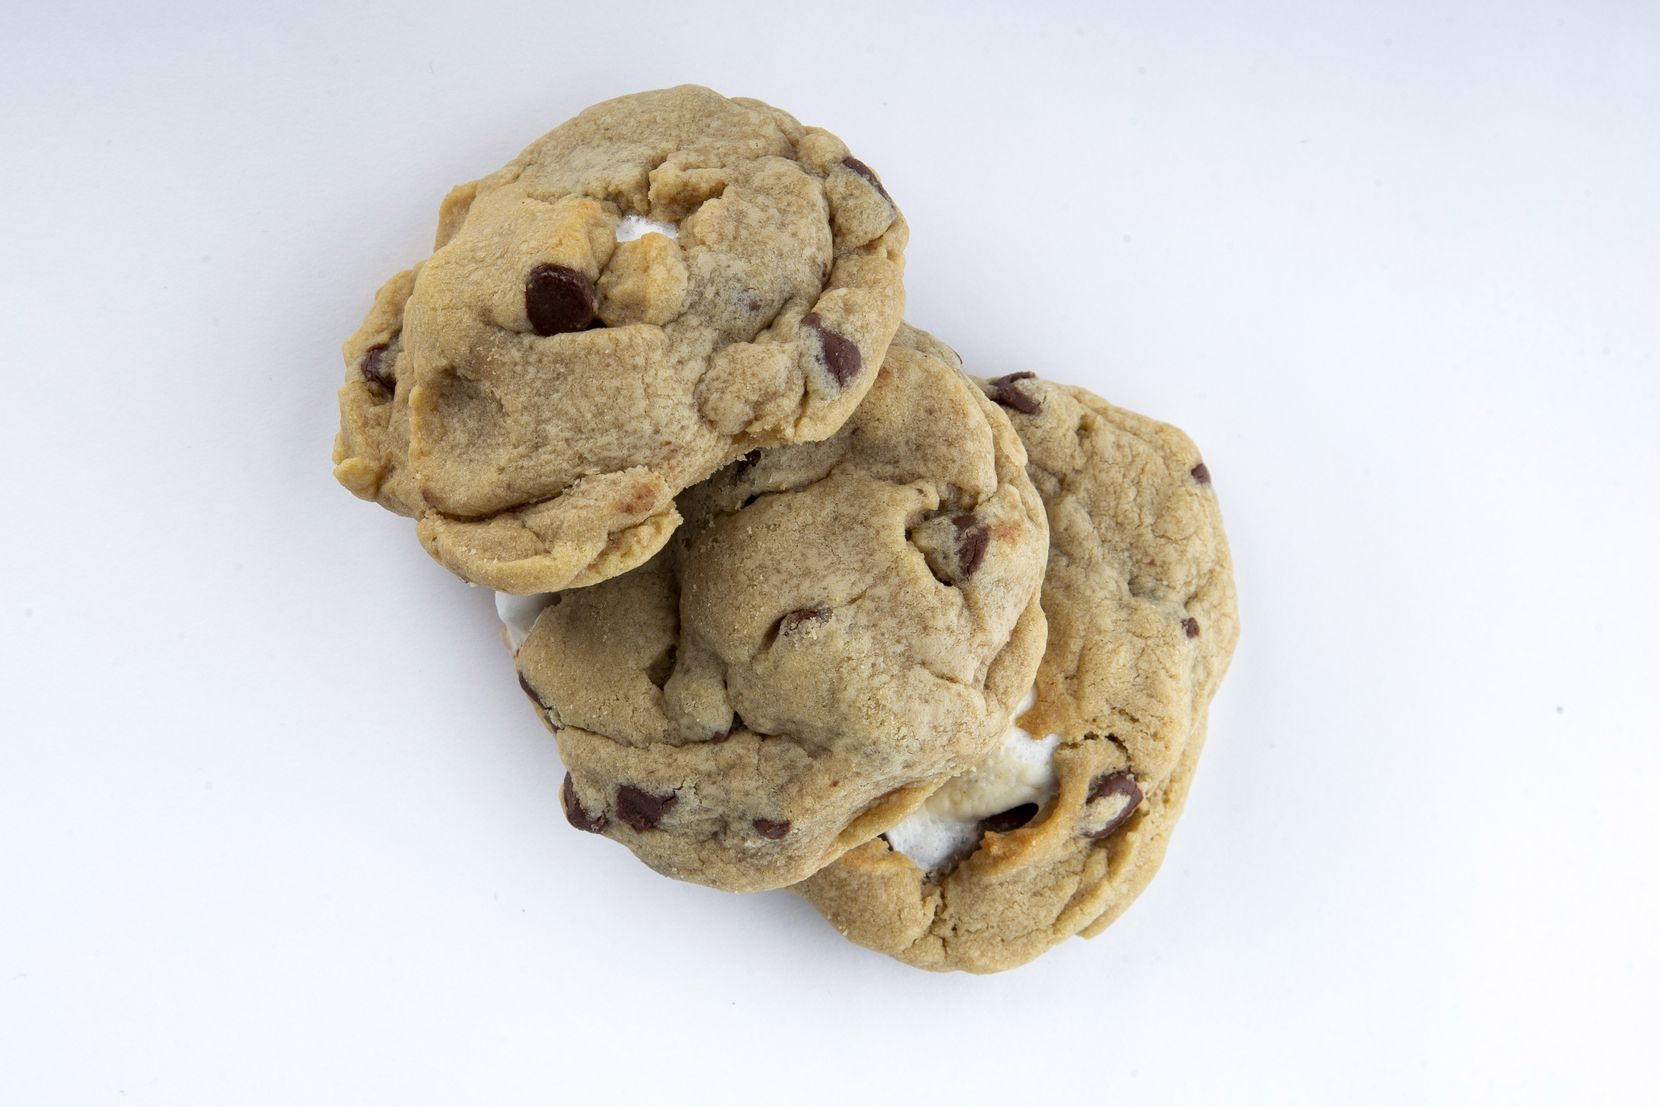 The s'mores chocolate chip cookie made by Luna Hartgrove won second place in the kid's choice cookie category.